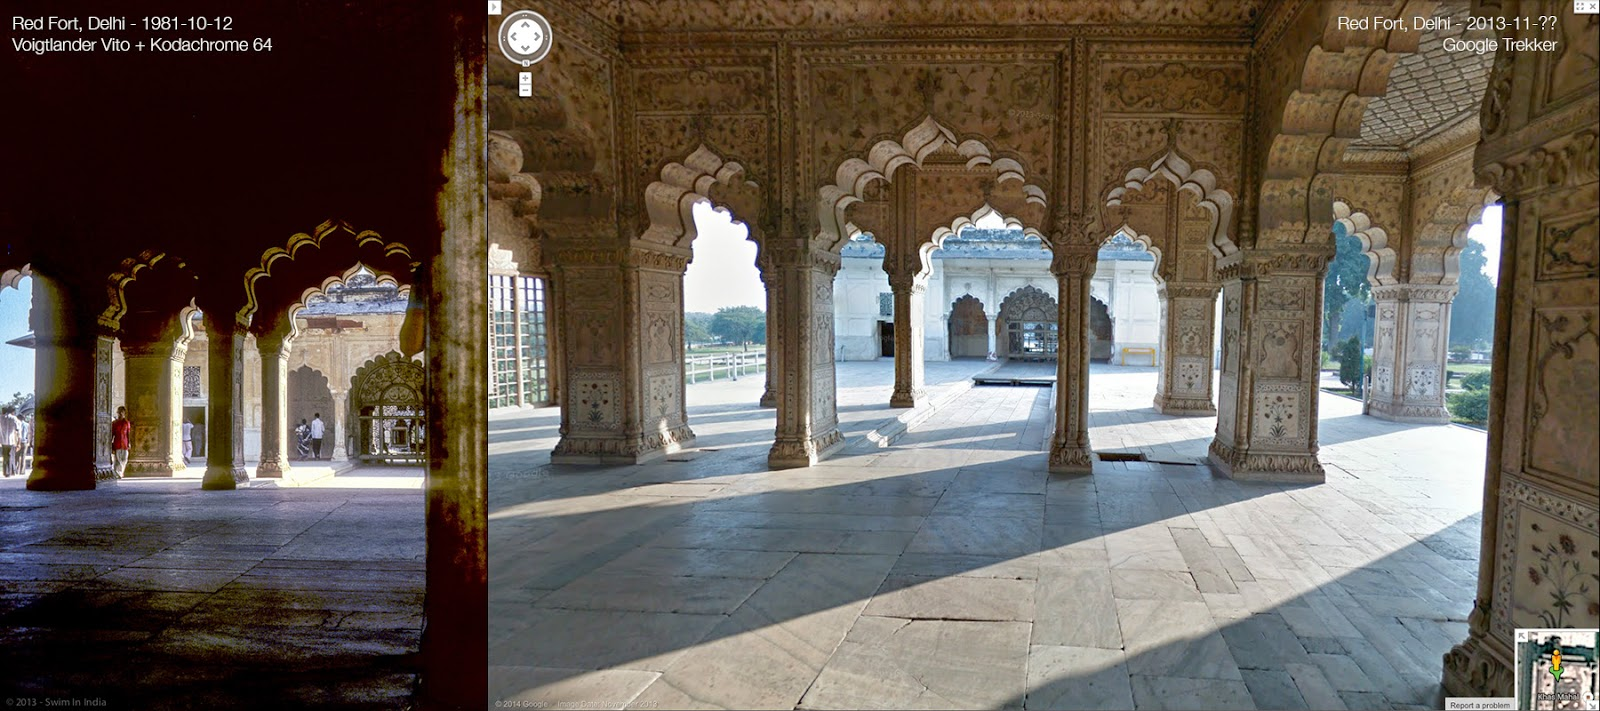 About Retro Blogging Back At Red Fort Delhi 33 Years